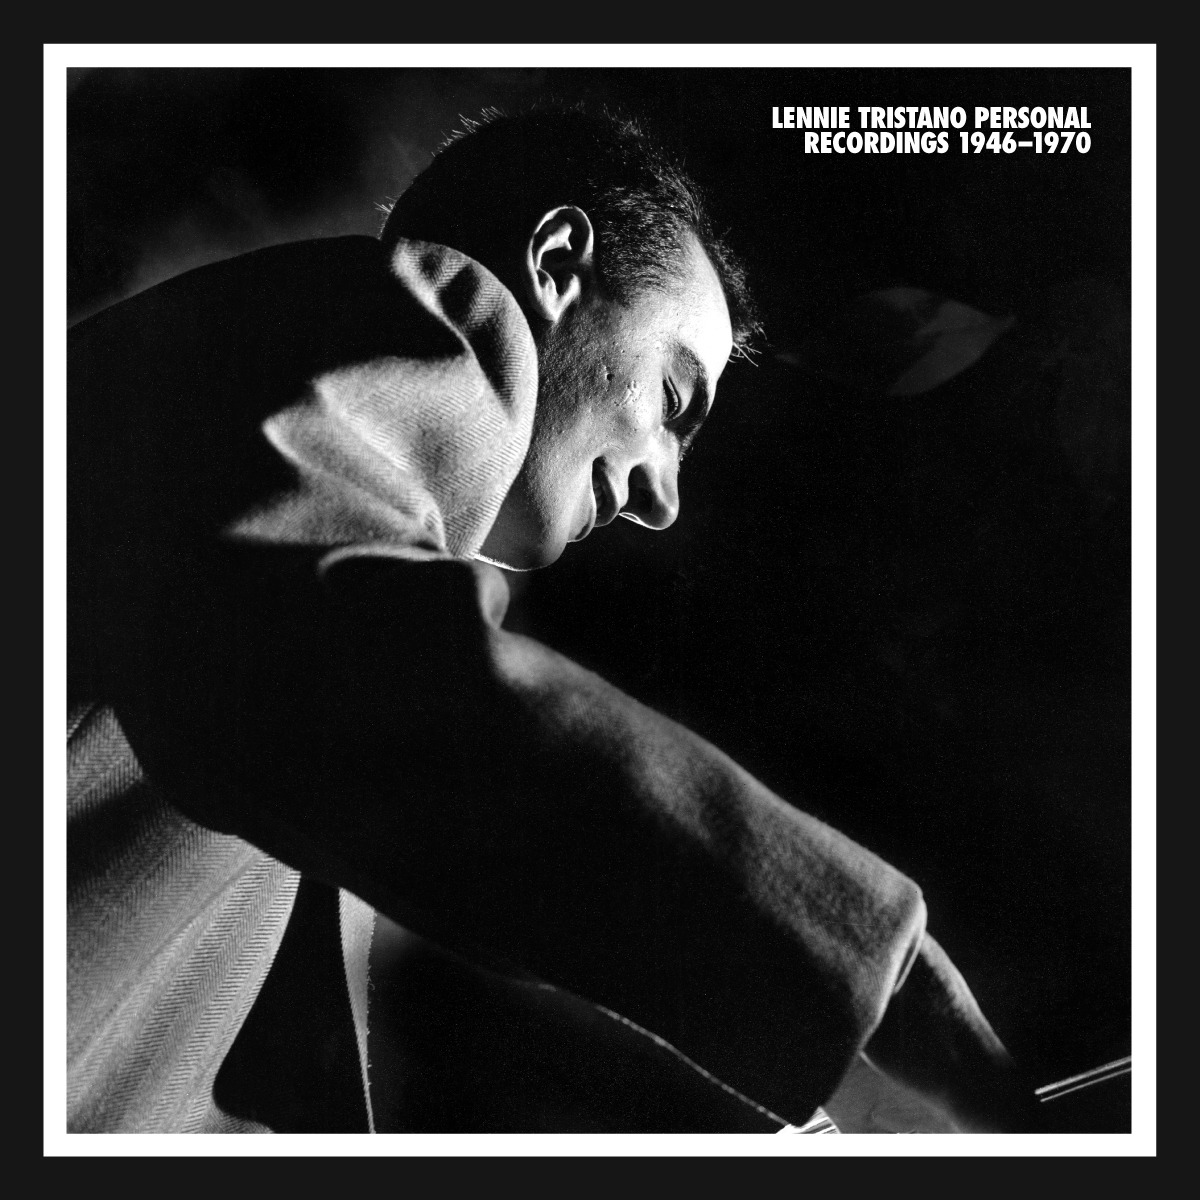 NEW RELEASE: Mosaic Records and Dot Time Records Announce the November 15th Release of 'Lennie Tristano Personal Recordings 1946 – 1970'